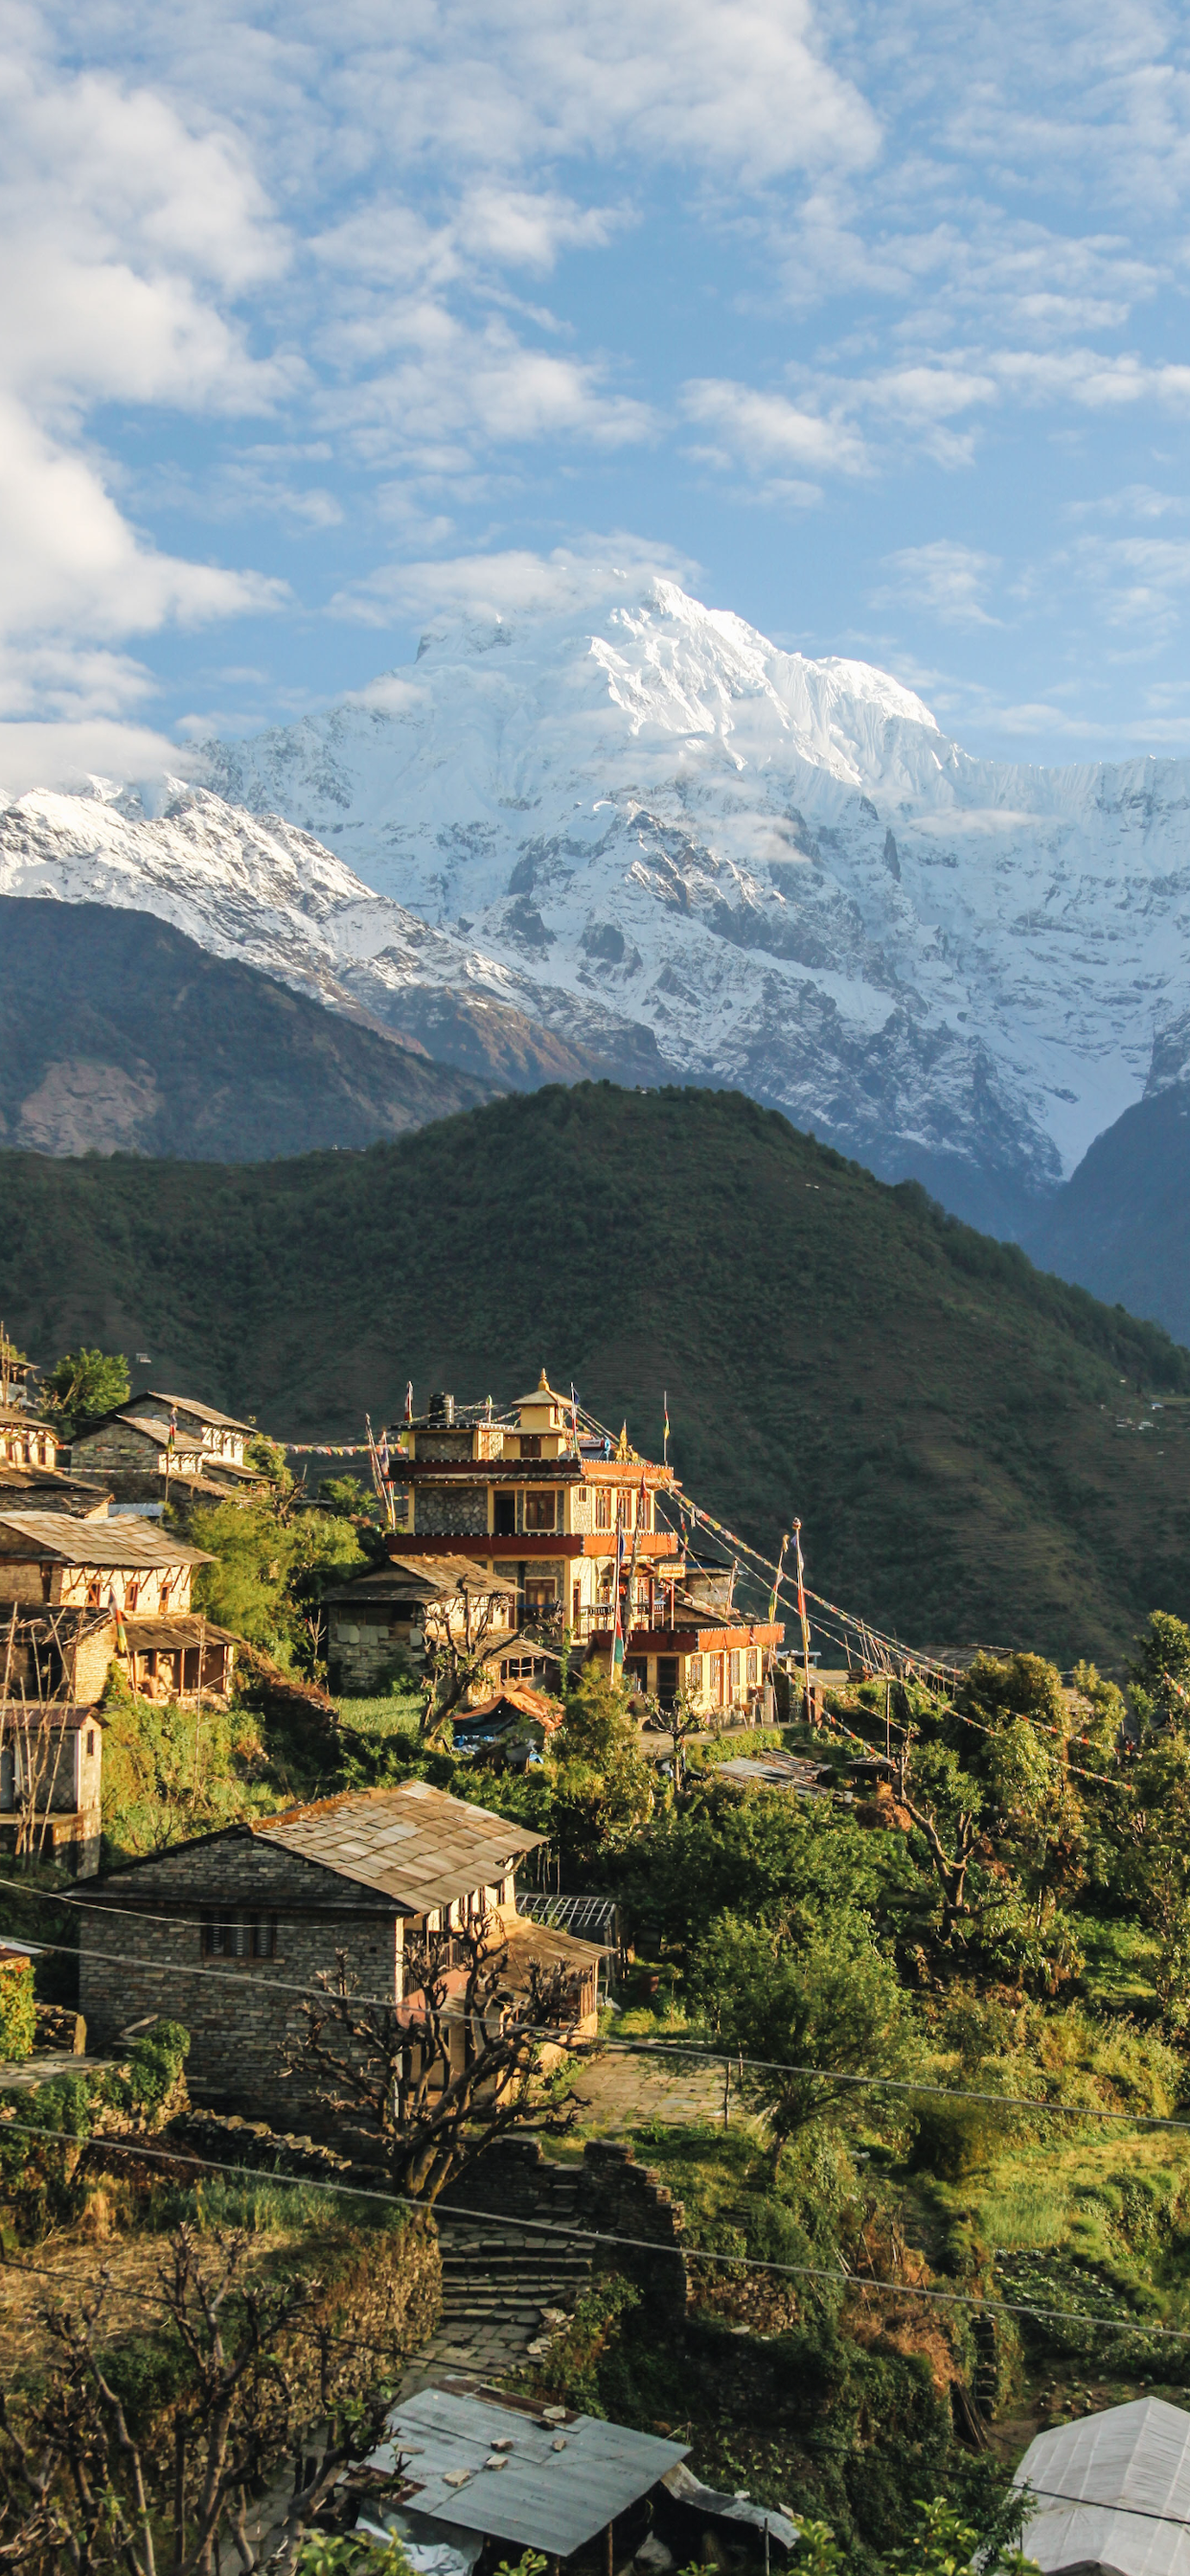 iPhone wallpapers nepal annapurna narchyang Fonds d'écran iPhone du 10/12/2019